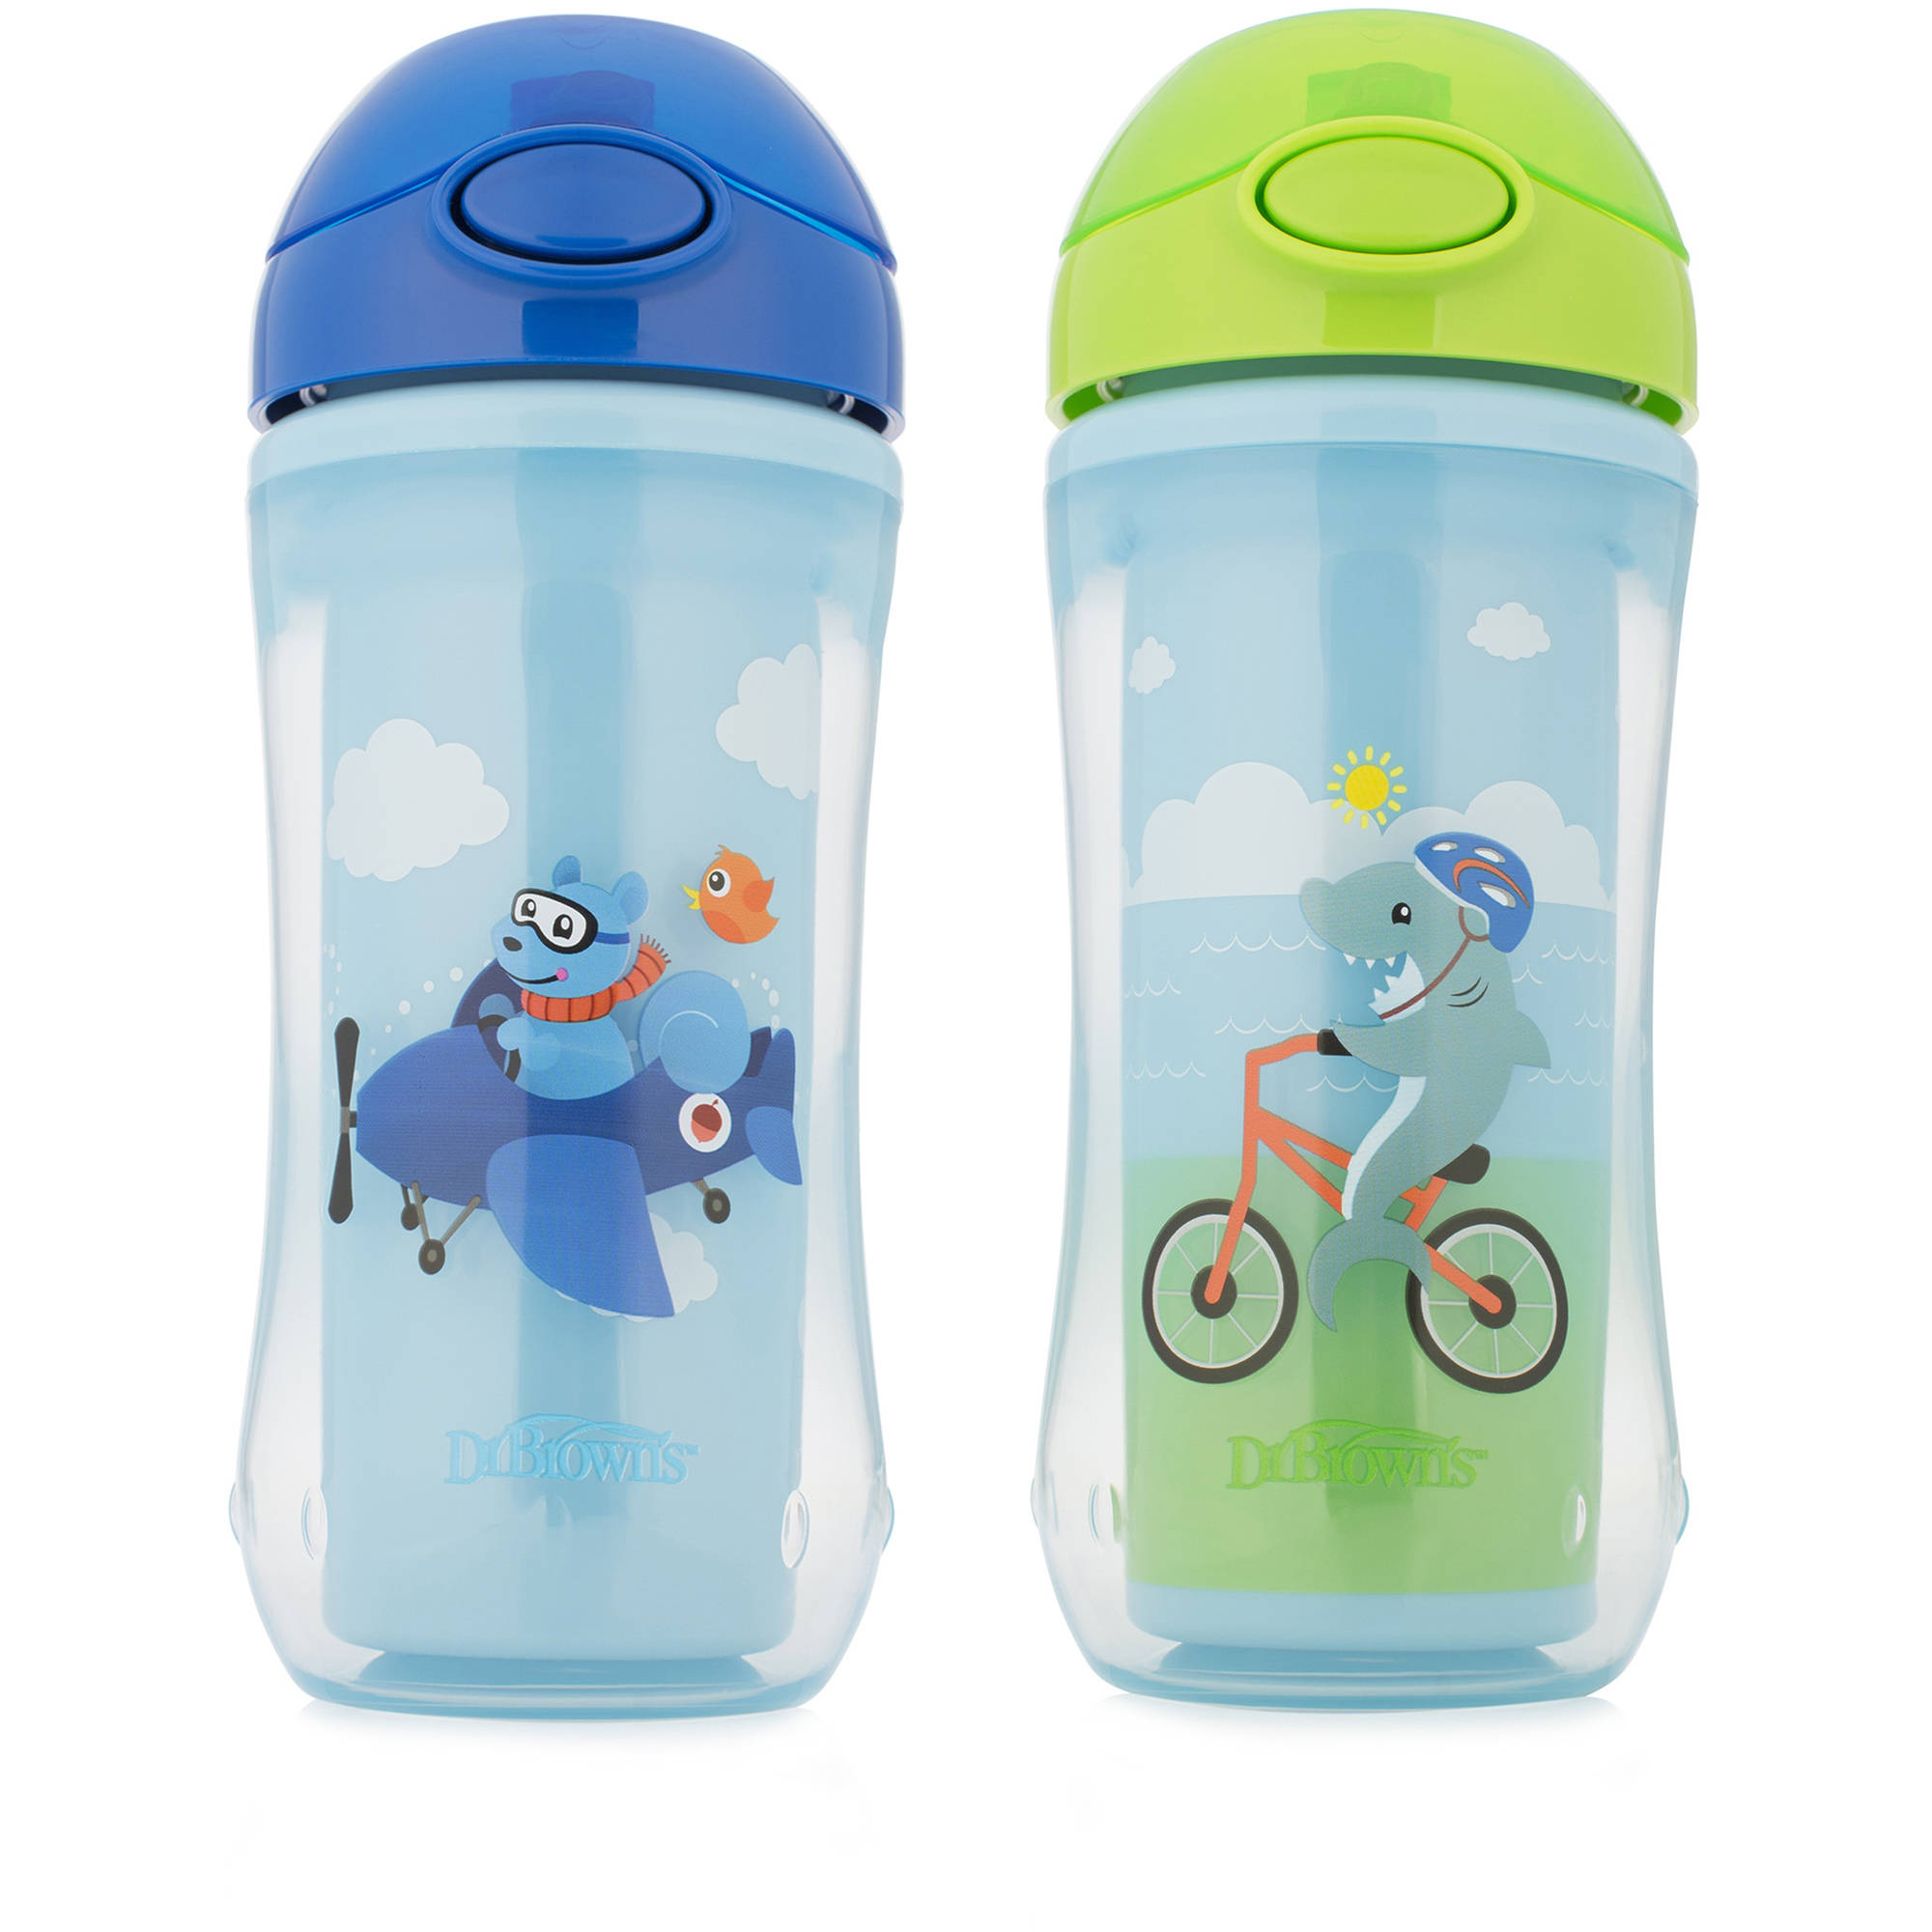 Dr. Brown's On-The-Go Straw Sport Cup, Boy Squirrel/Shark, BPA-Free, 10 oz, 2-pack Assorted (Stage 5)